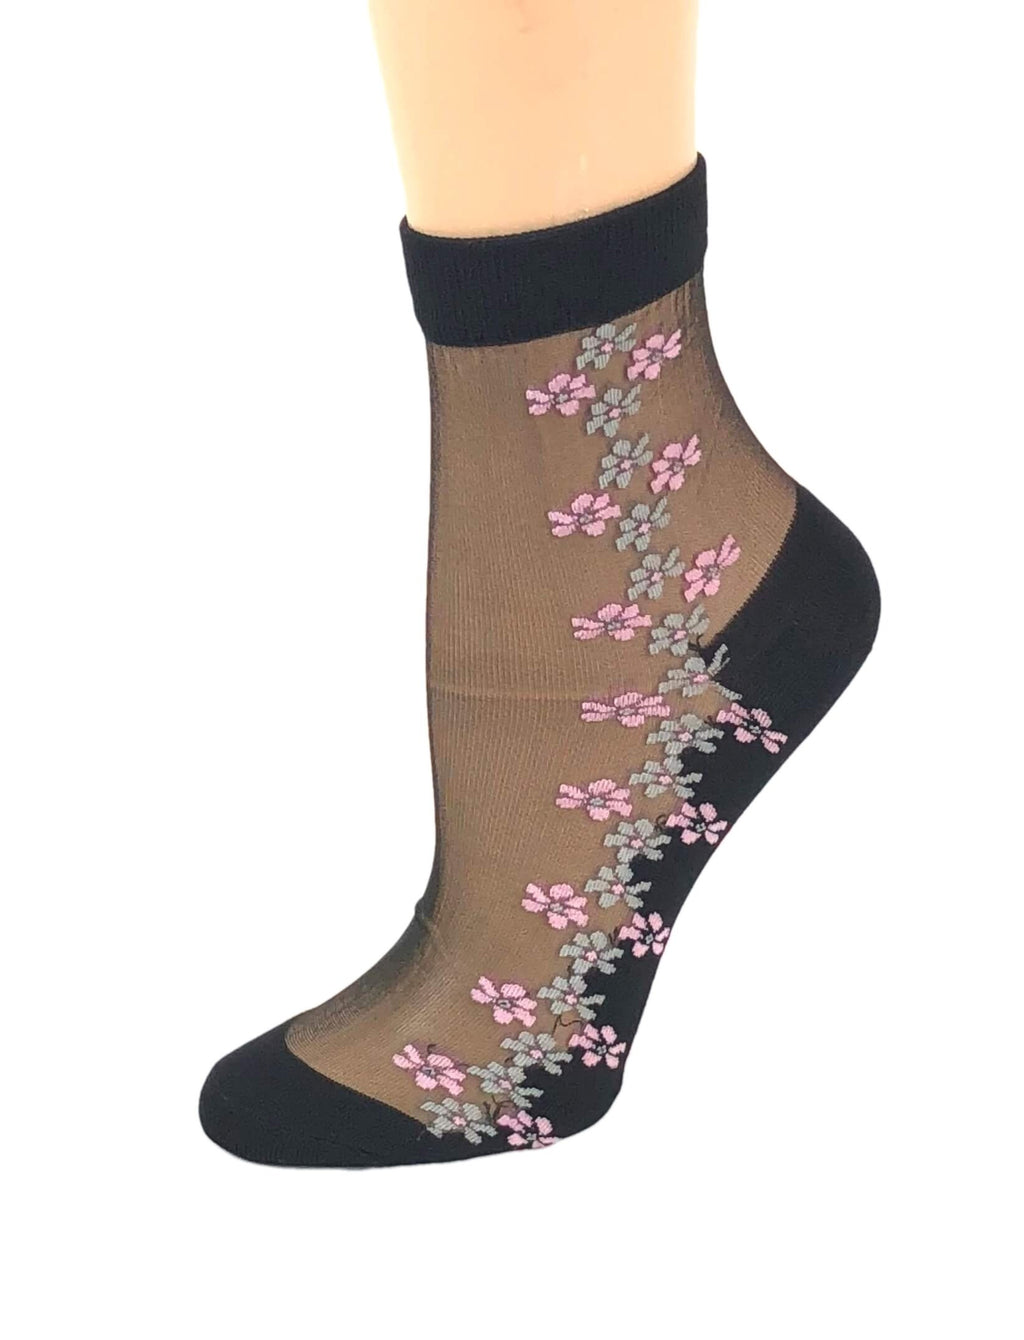 Blush Pink Sheer Socks - Global Trendz Fashion®